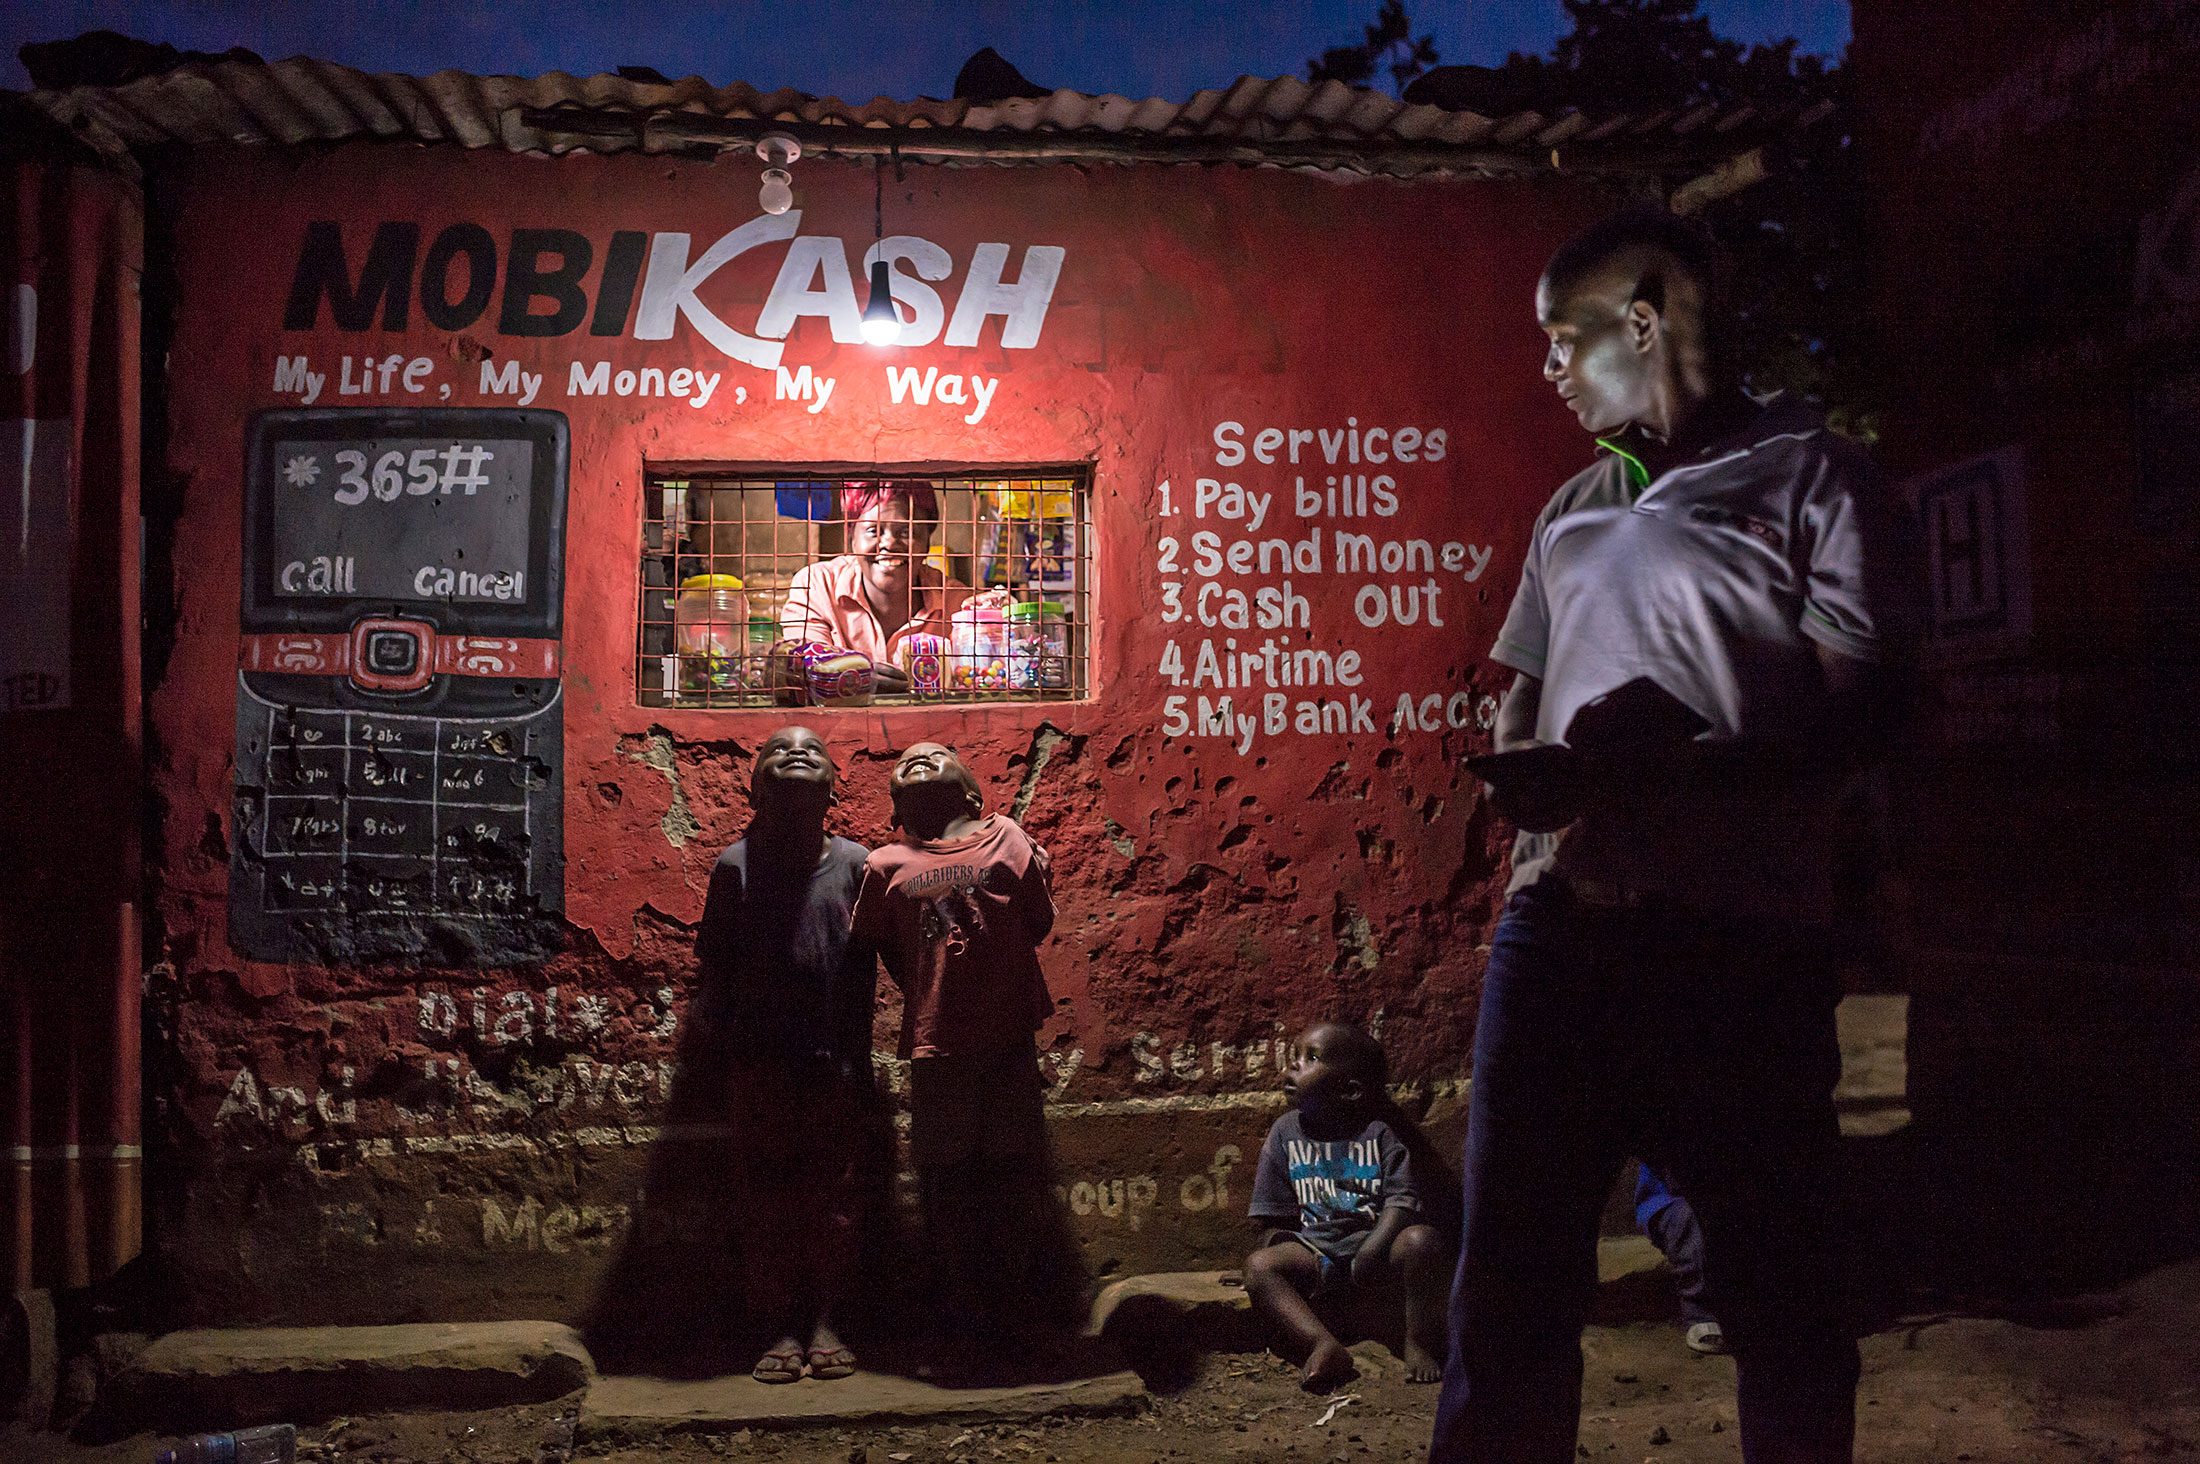 Customers, small-scale businesses, food vendors, and mobile phone scratch card and money-transfer agents are benefiting from solar lights to conduct economic activities after sunset.